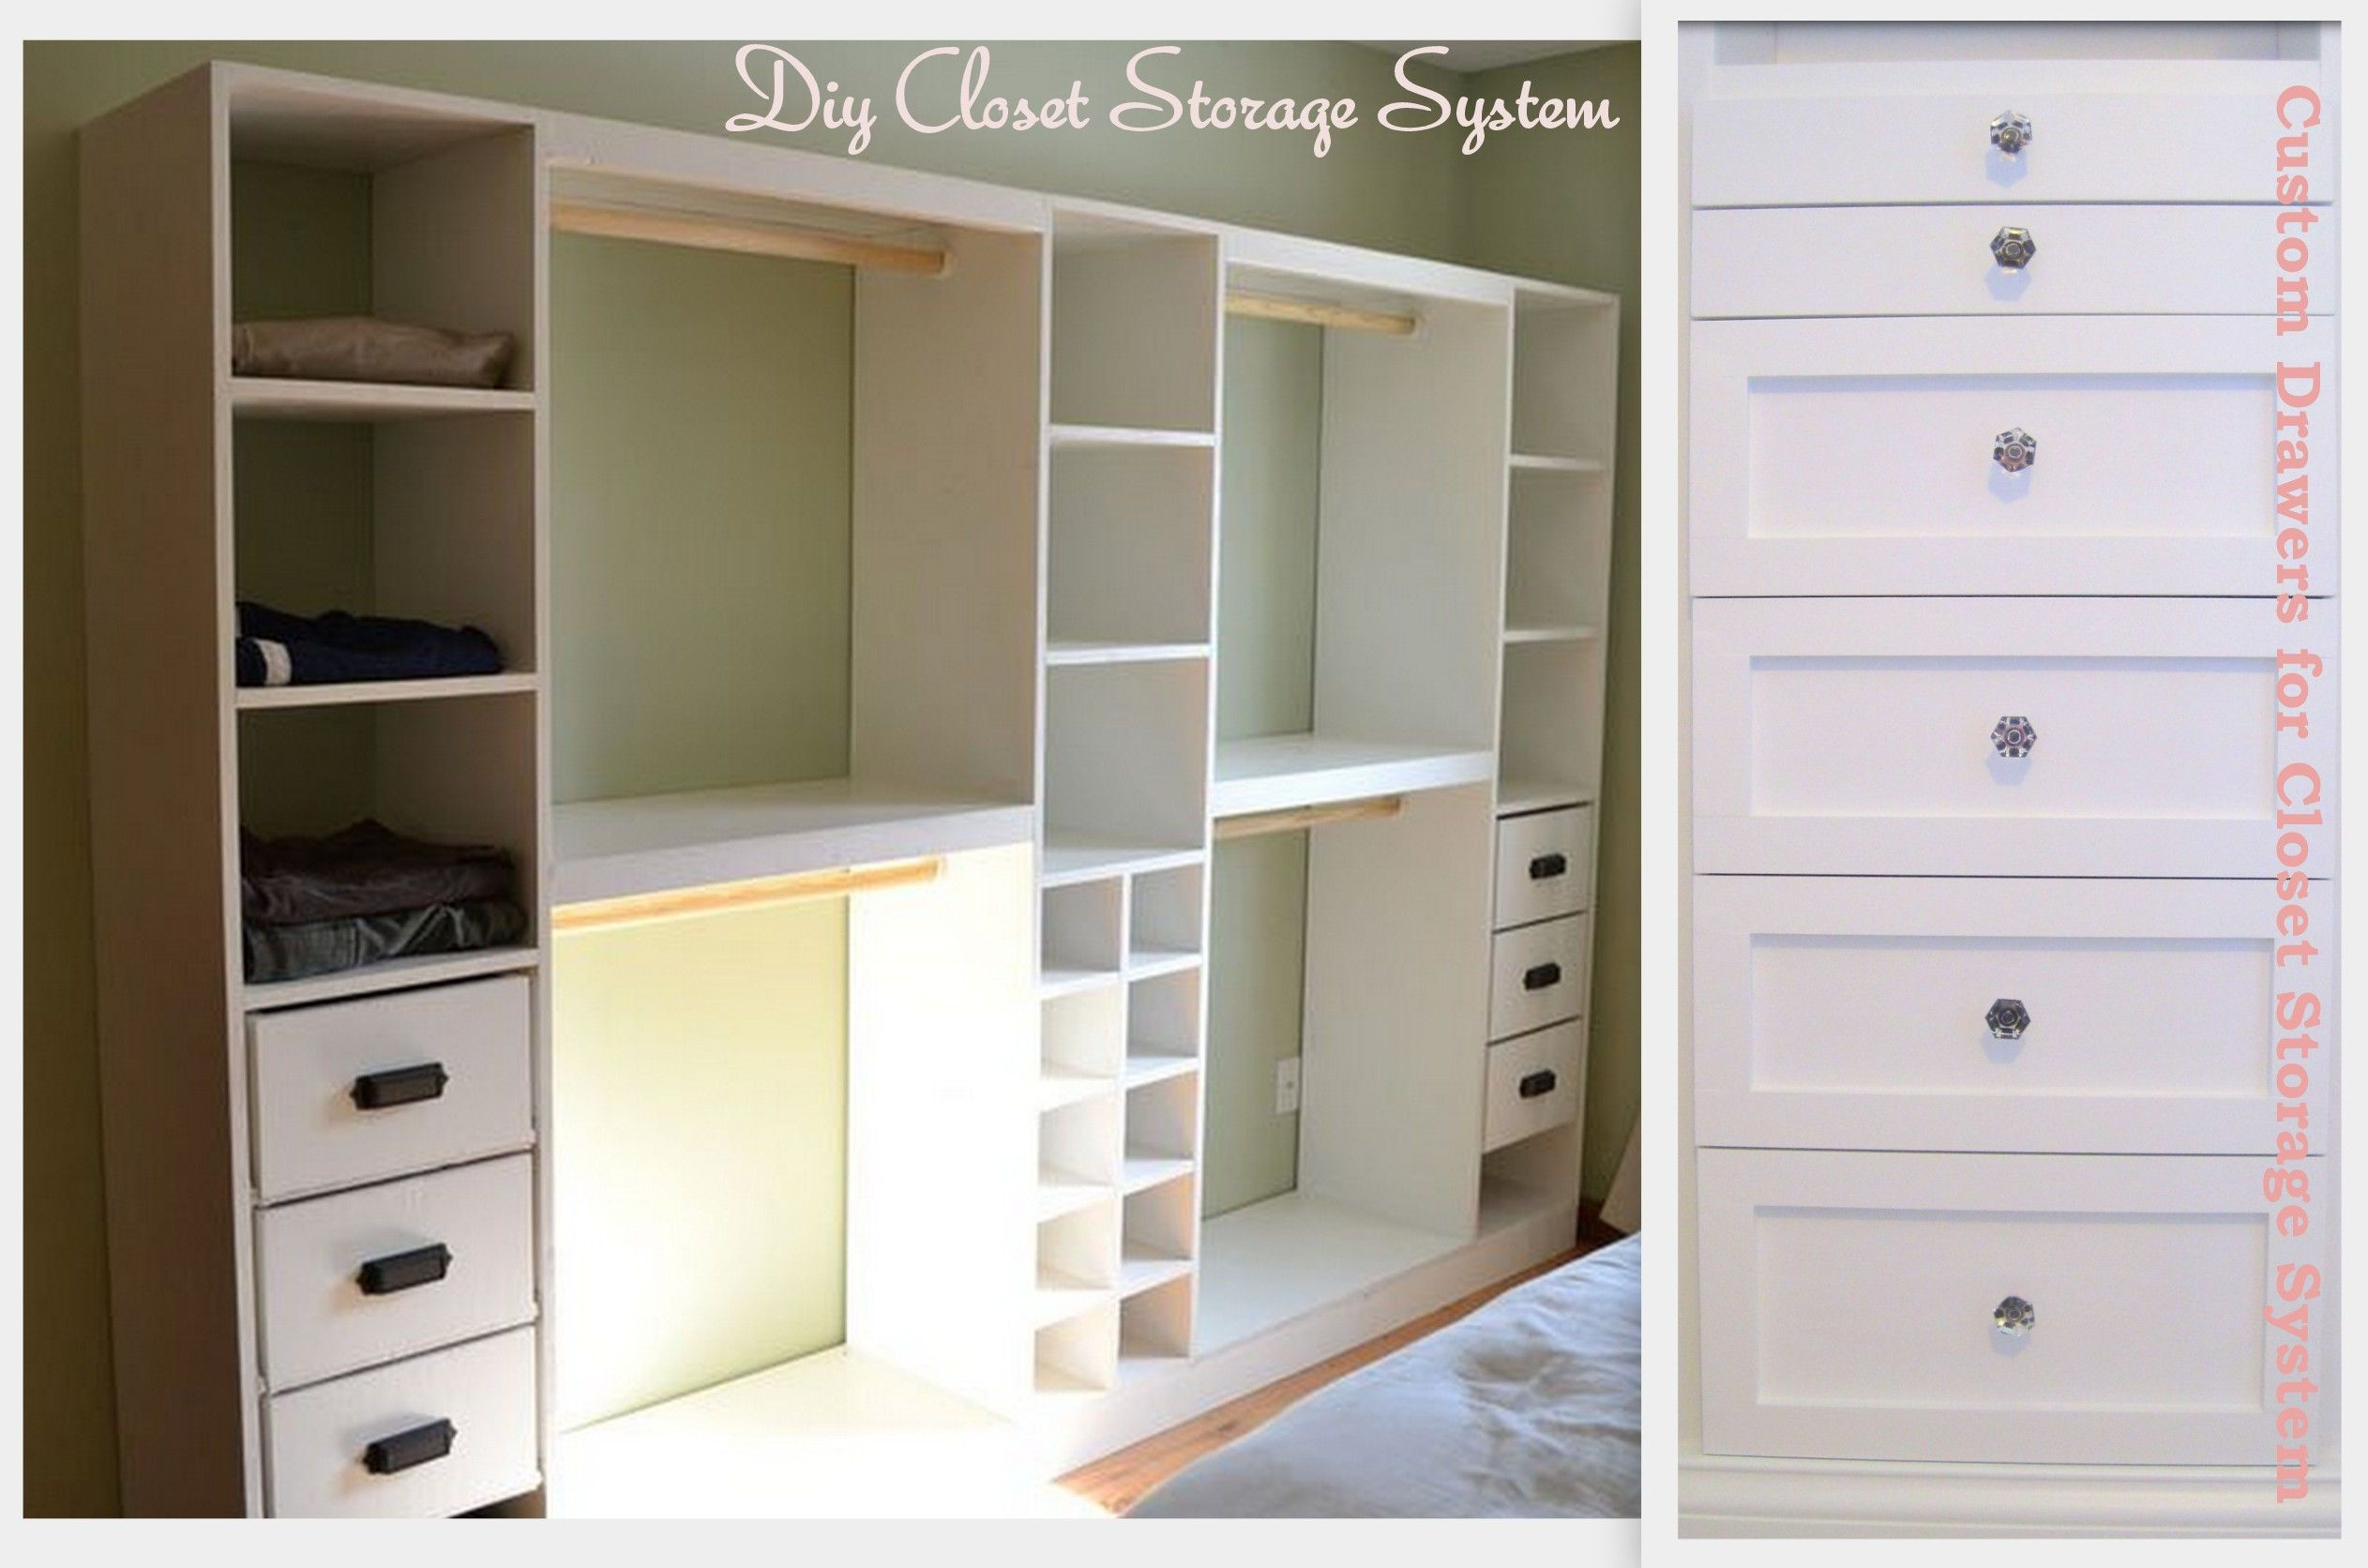 plans in closet system diy left walk co systems n wht nongzi